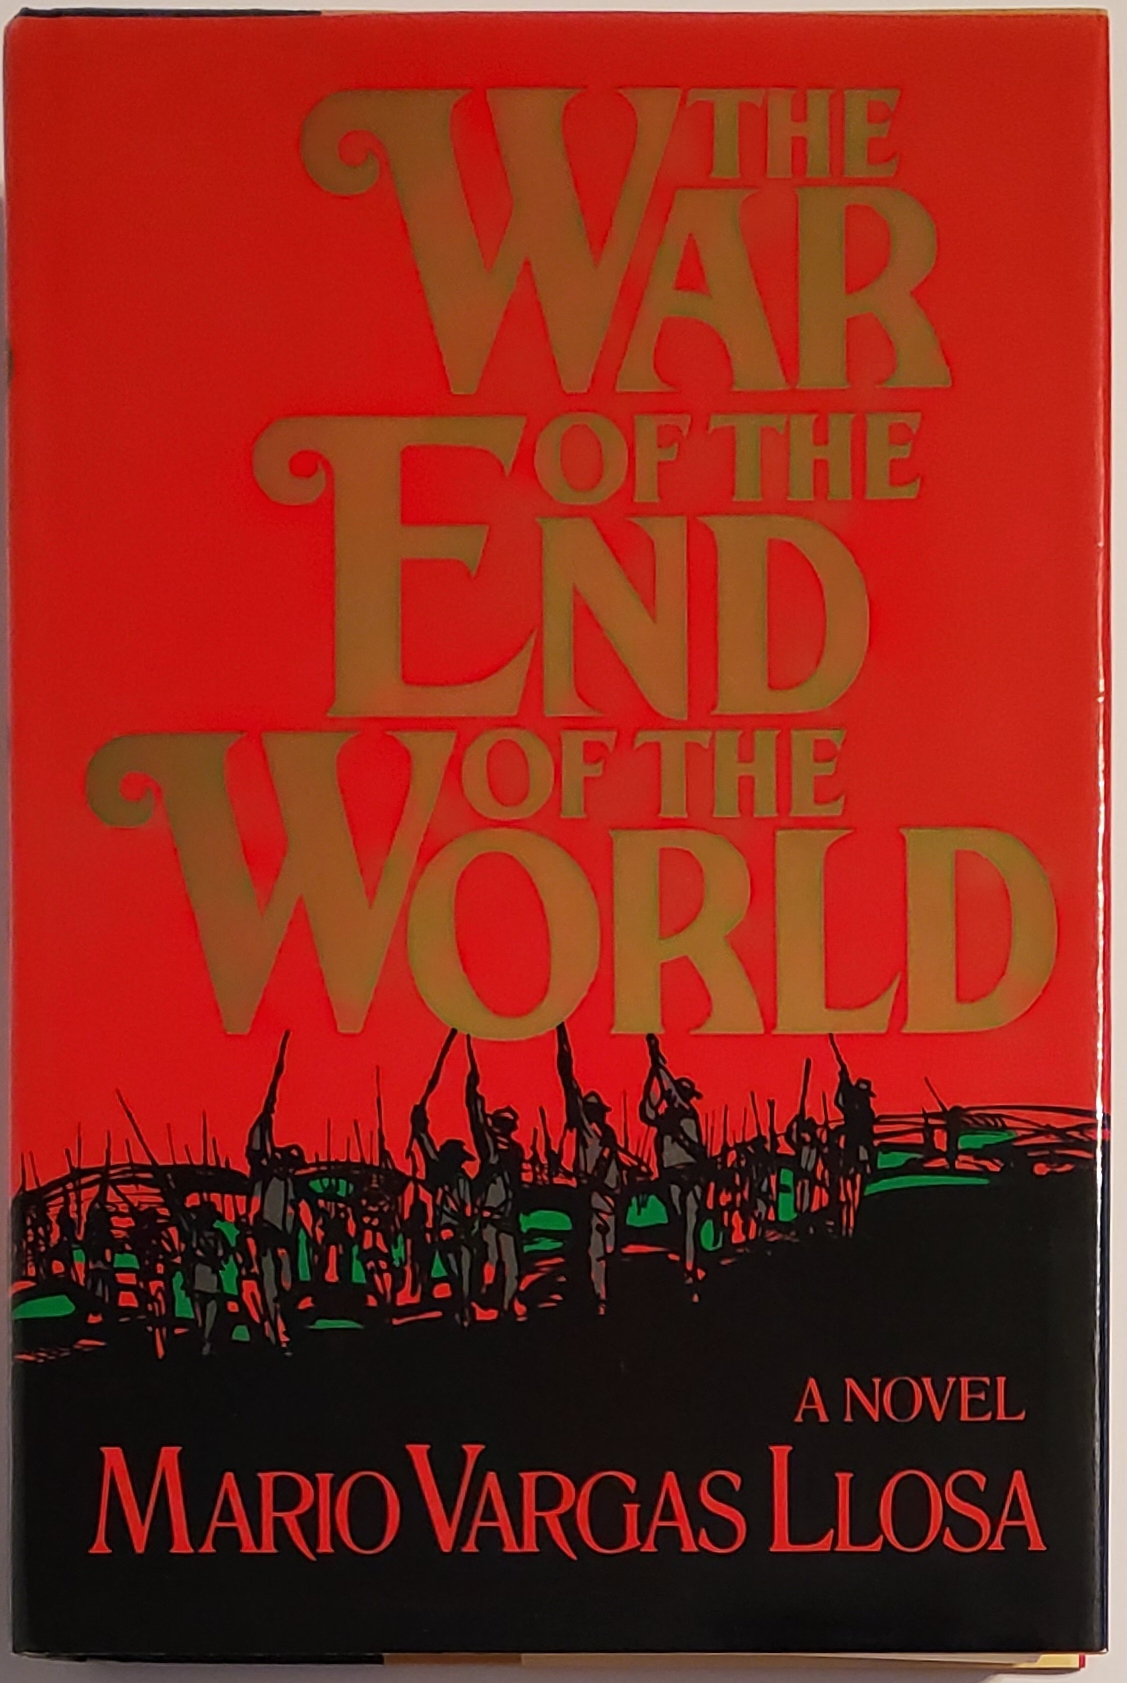 THE WAR OF THE END OF THE WORLD. Translated by Helen R. Lane. Mario Vargas Llosa.